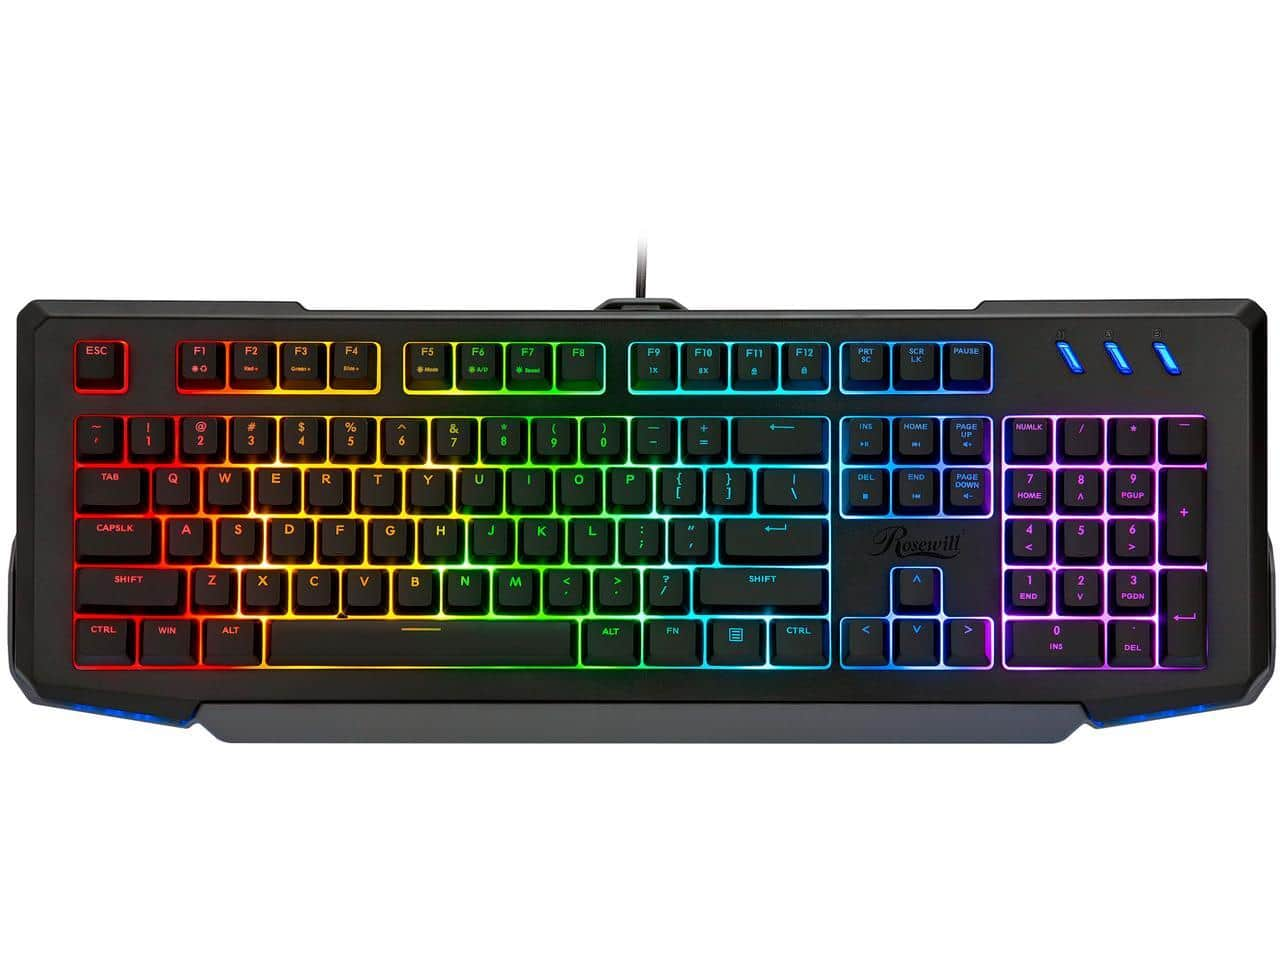 Rosewill NEON K42 RGB Membrane Mechanical Gaming Keyboard - $23 Shipped